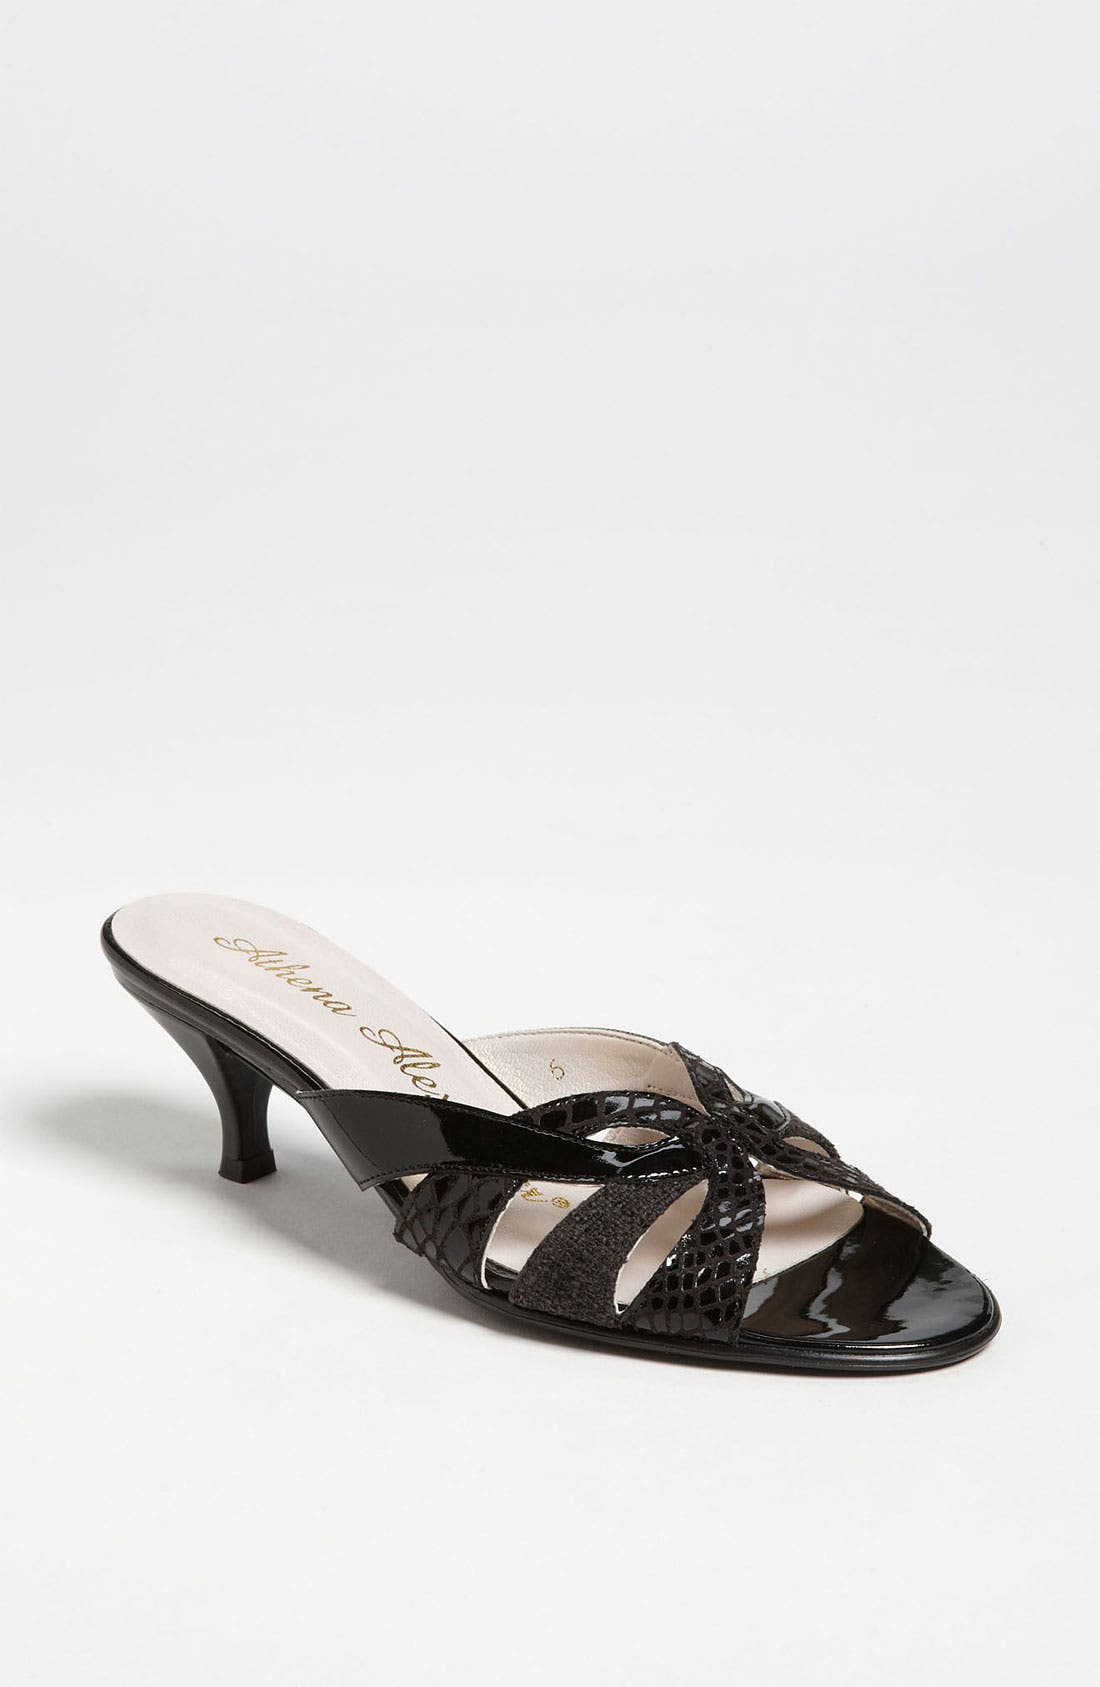 Alternate Image 1 Selected - Athena Alexander 'Lorinda' Sandal